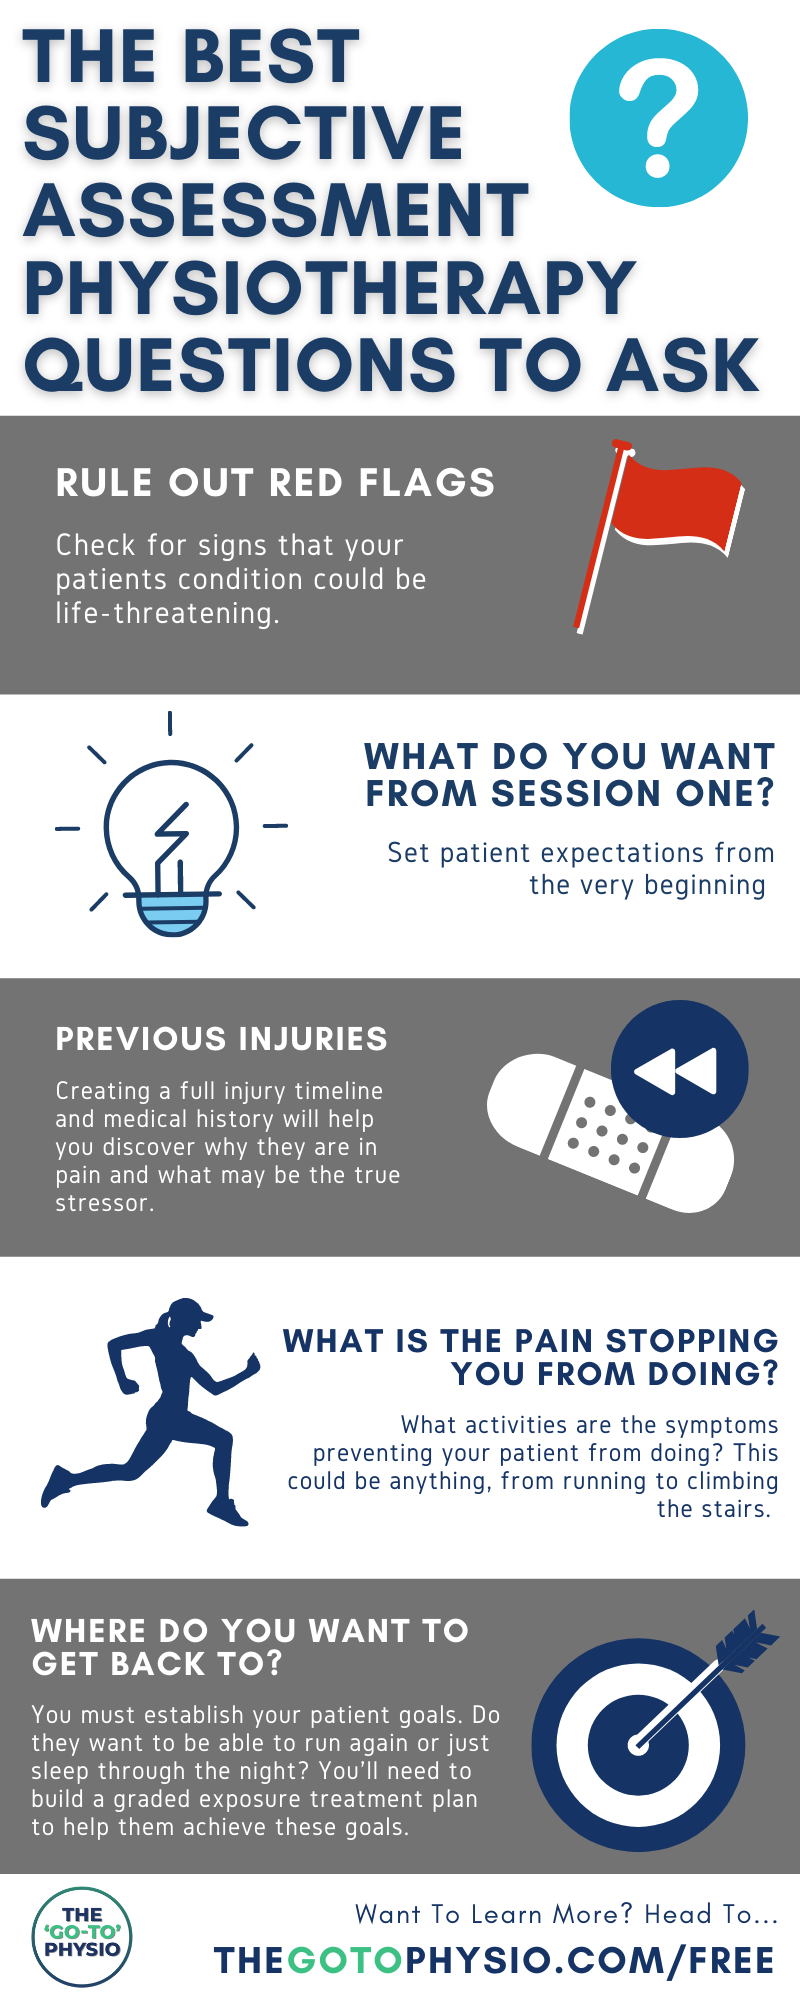 A timeline of injuries and stressors for your physiotherapy patient